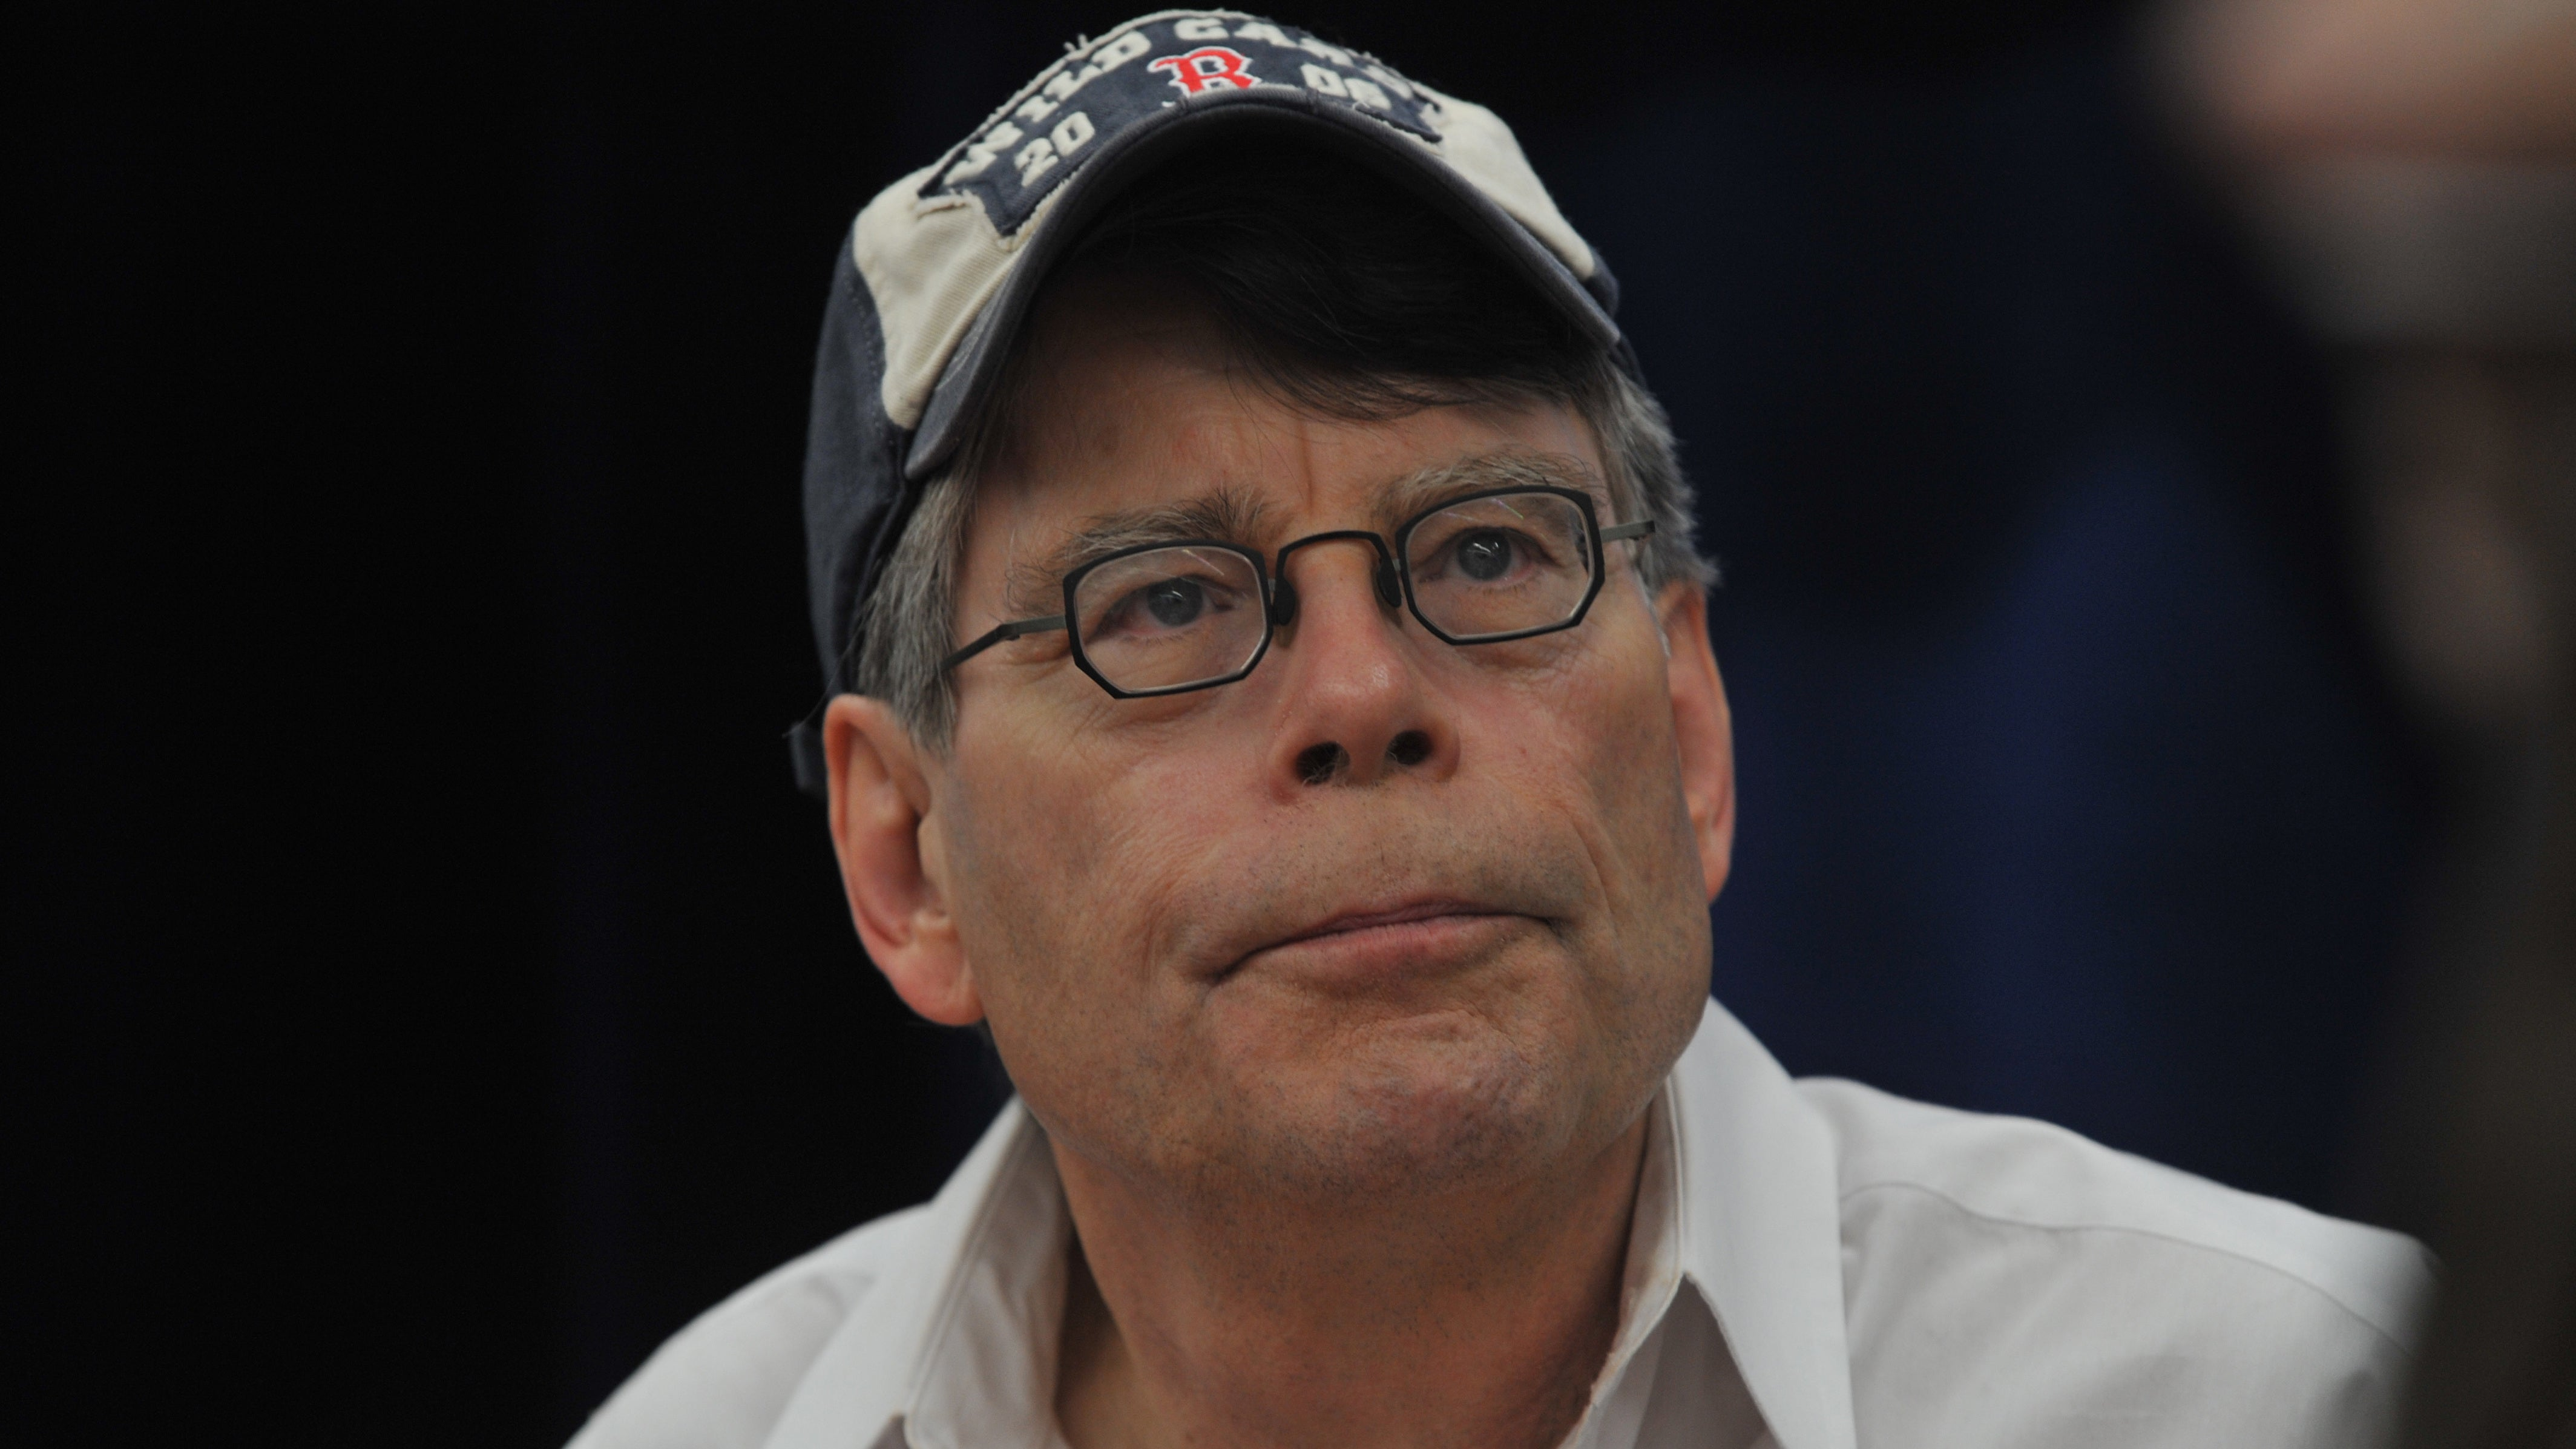 Thousands Of Rare, First Edition Stephen King Books And Manuscripts Destroyed In Freak Accident by Charles Pulliam-Moore for Gizmodo